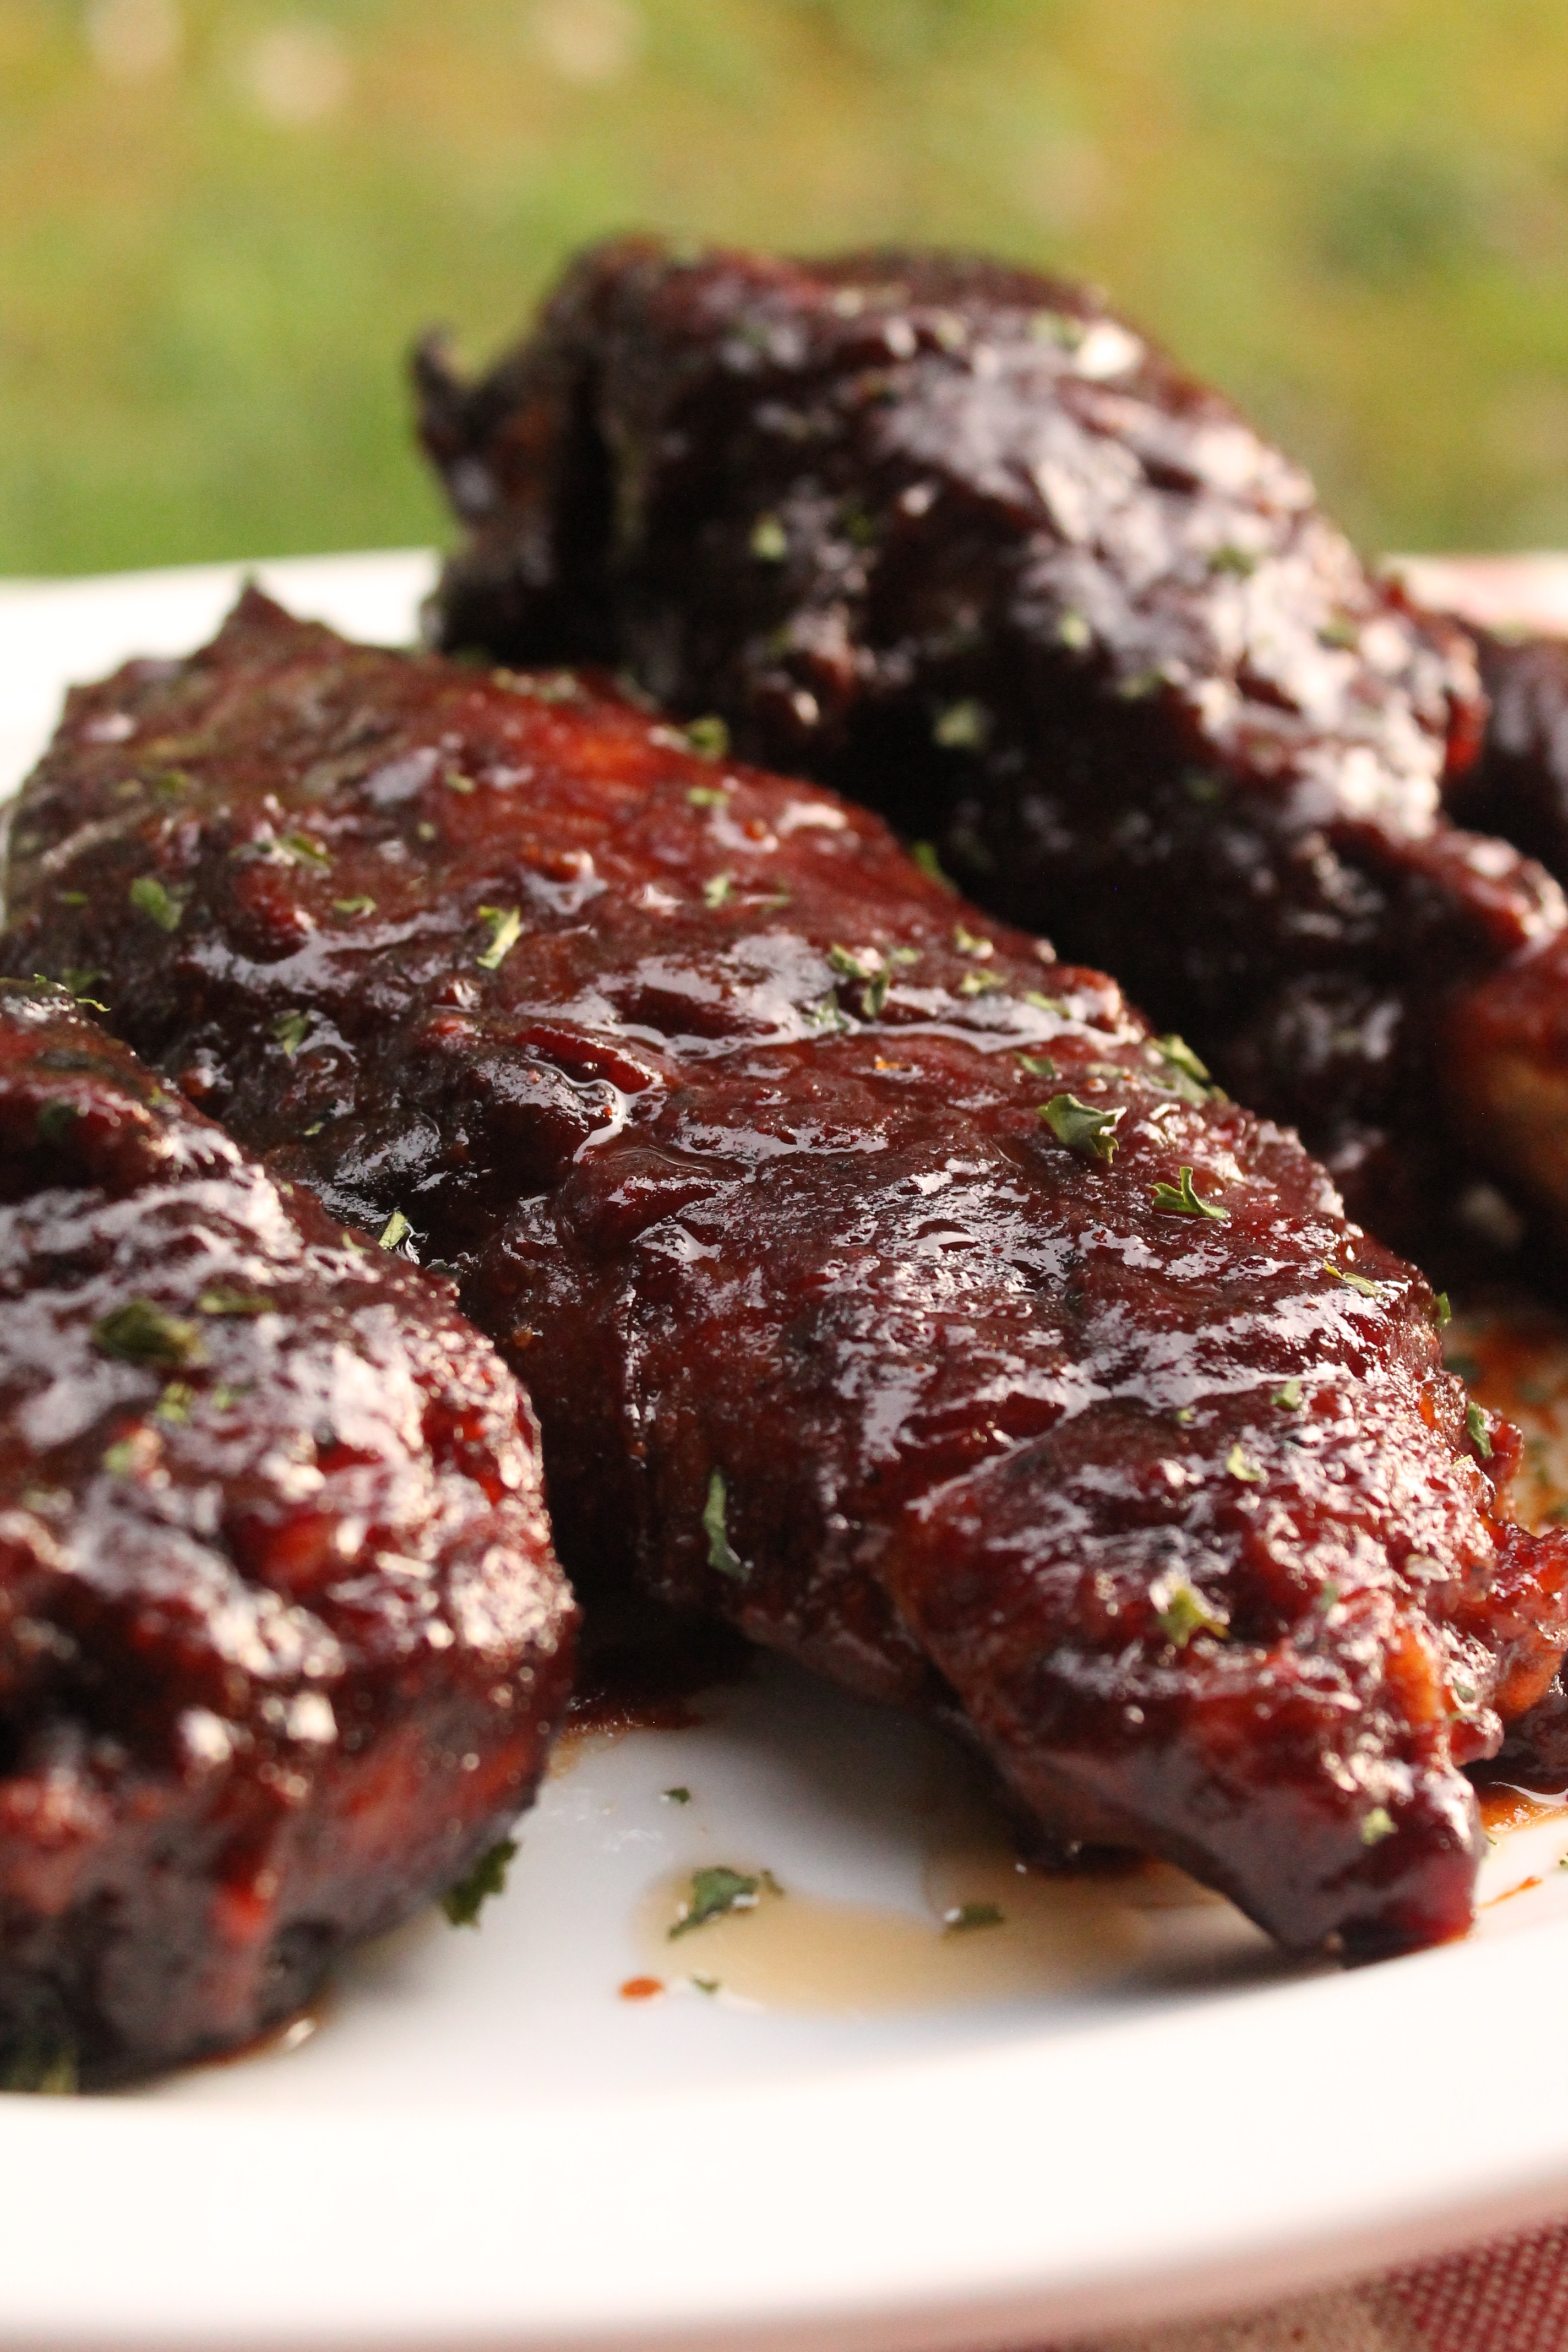 Cook these BBQ turkey wings slow and low for fall-off-the-bone tenderness!